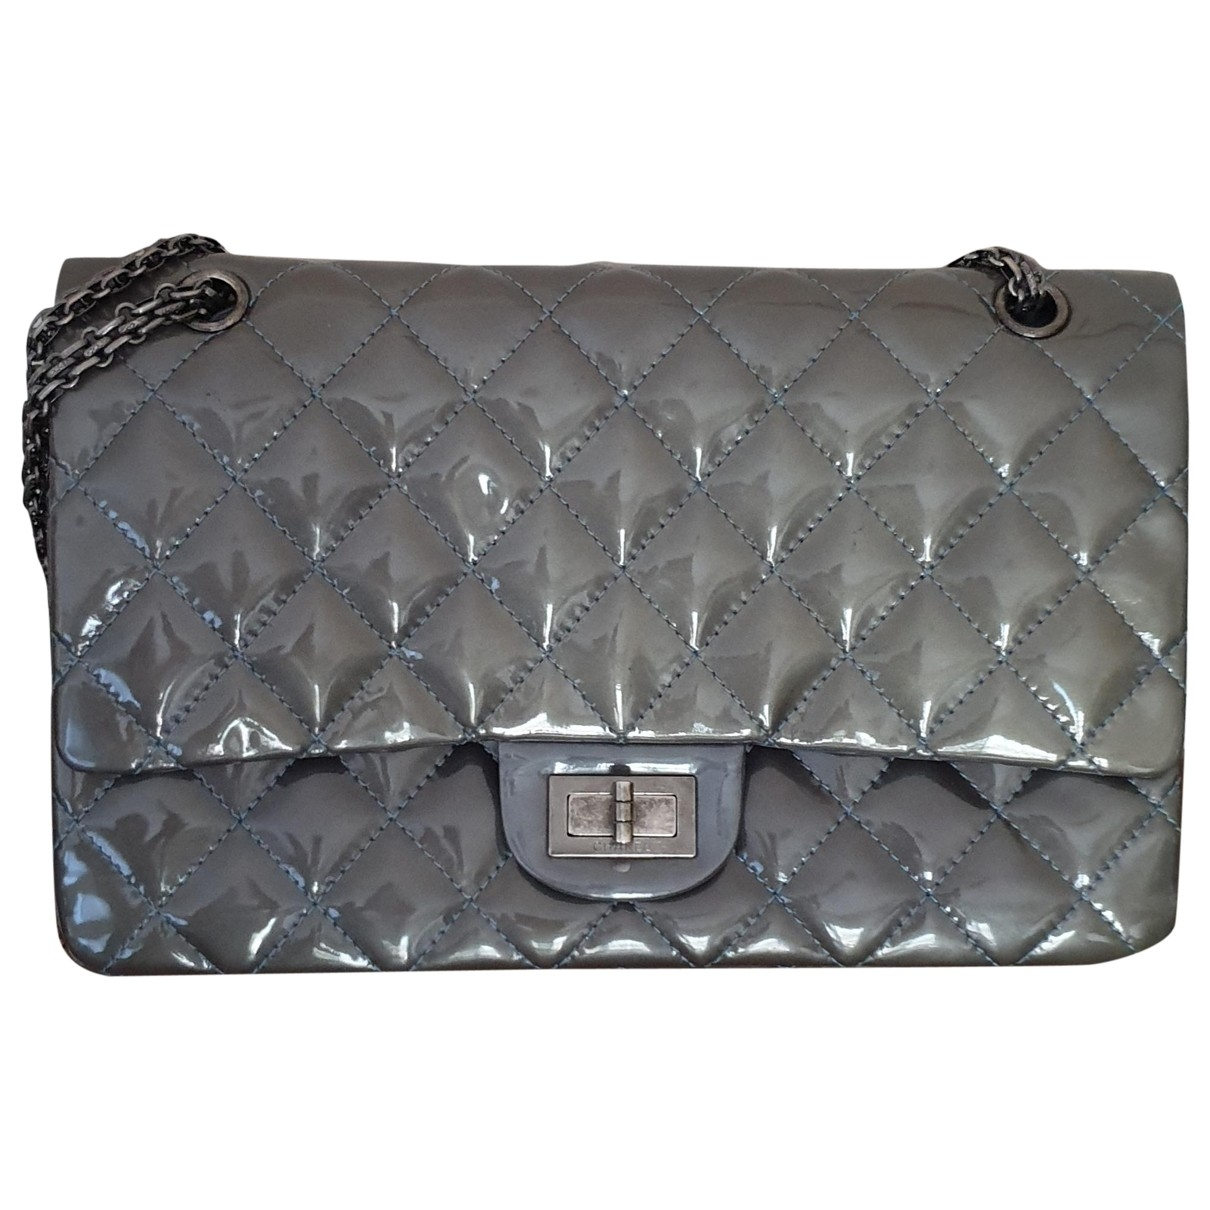 Chanel Timeless/Classique Grey Patent leather handbag for Women \N